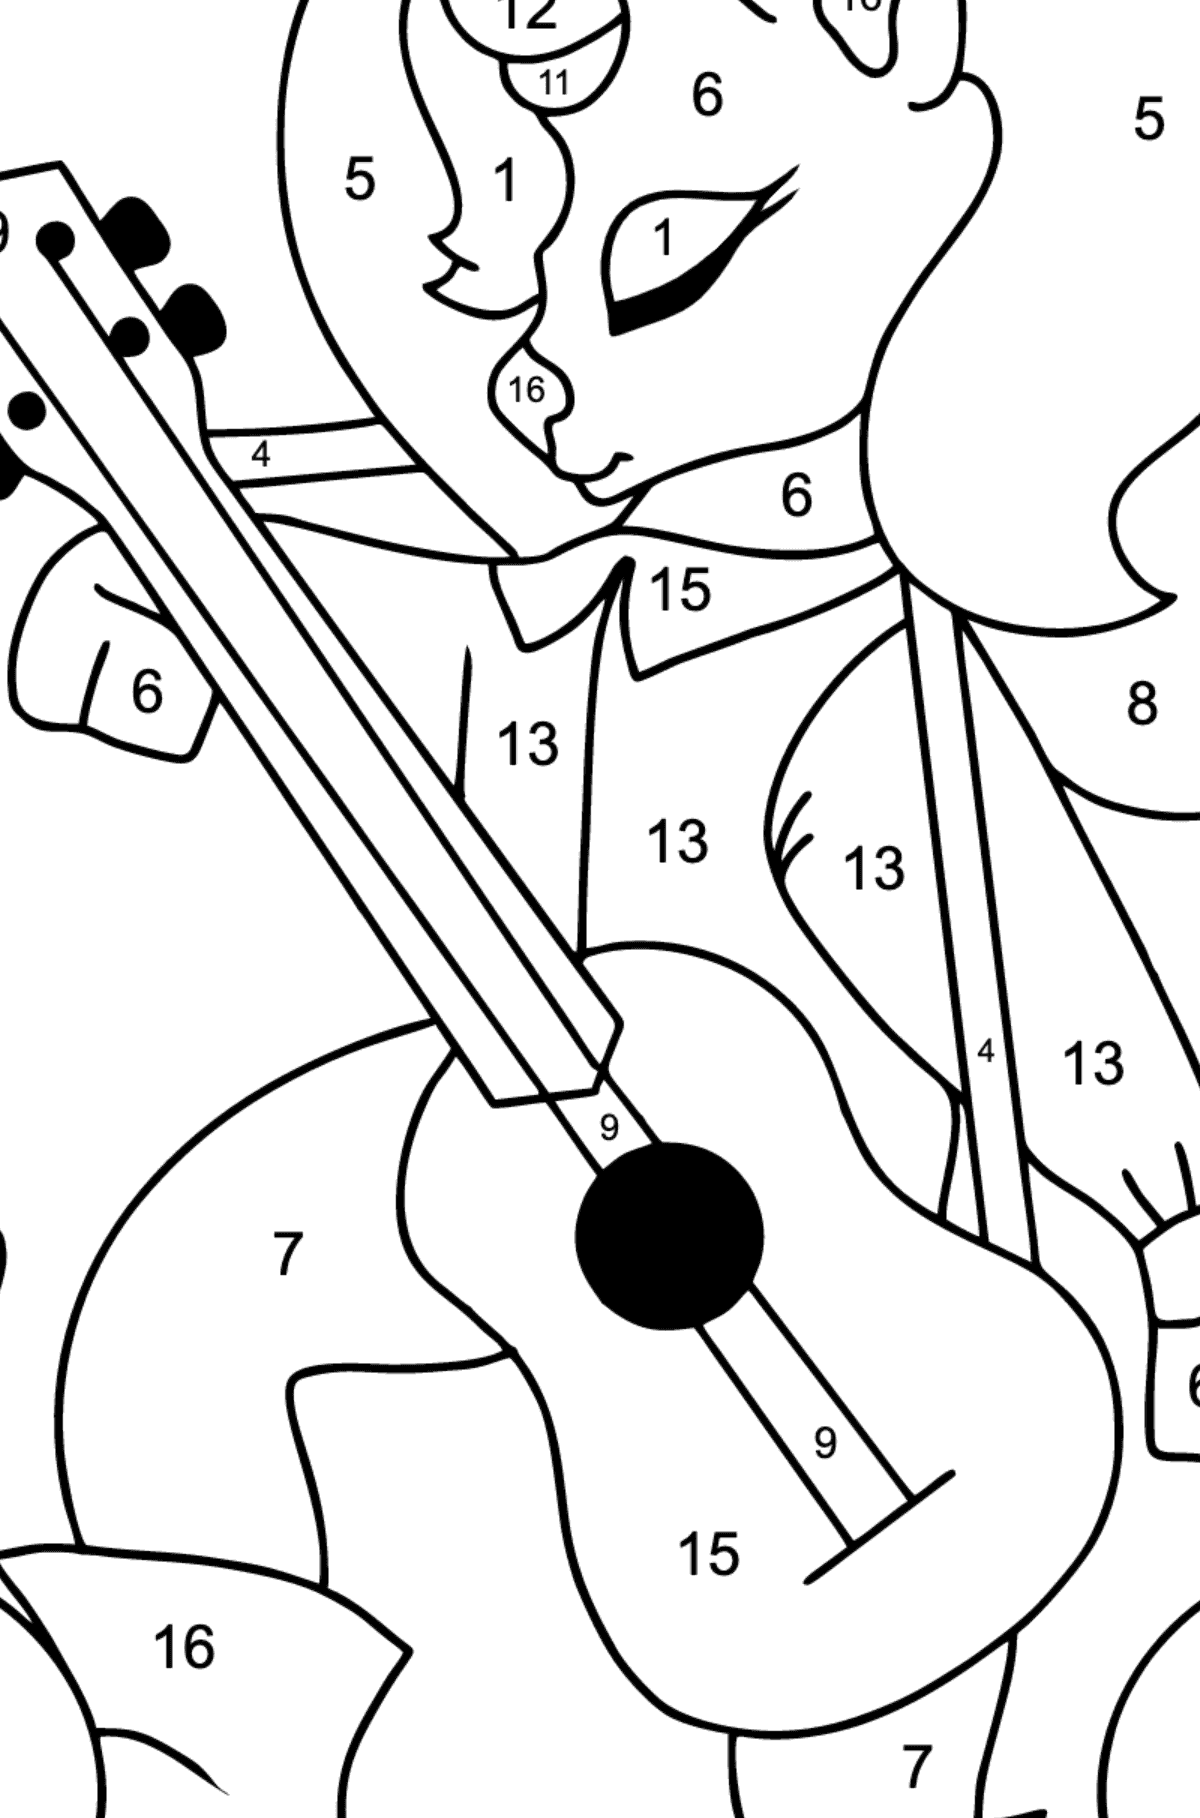 Complex Coloring Page - A Unicorn with a Guitar for Kids  - Color by Number